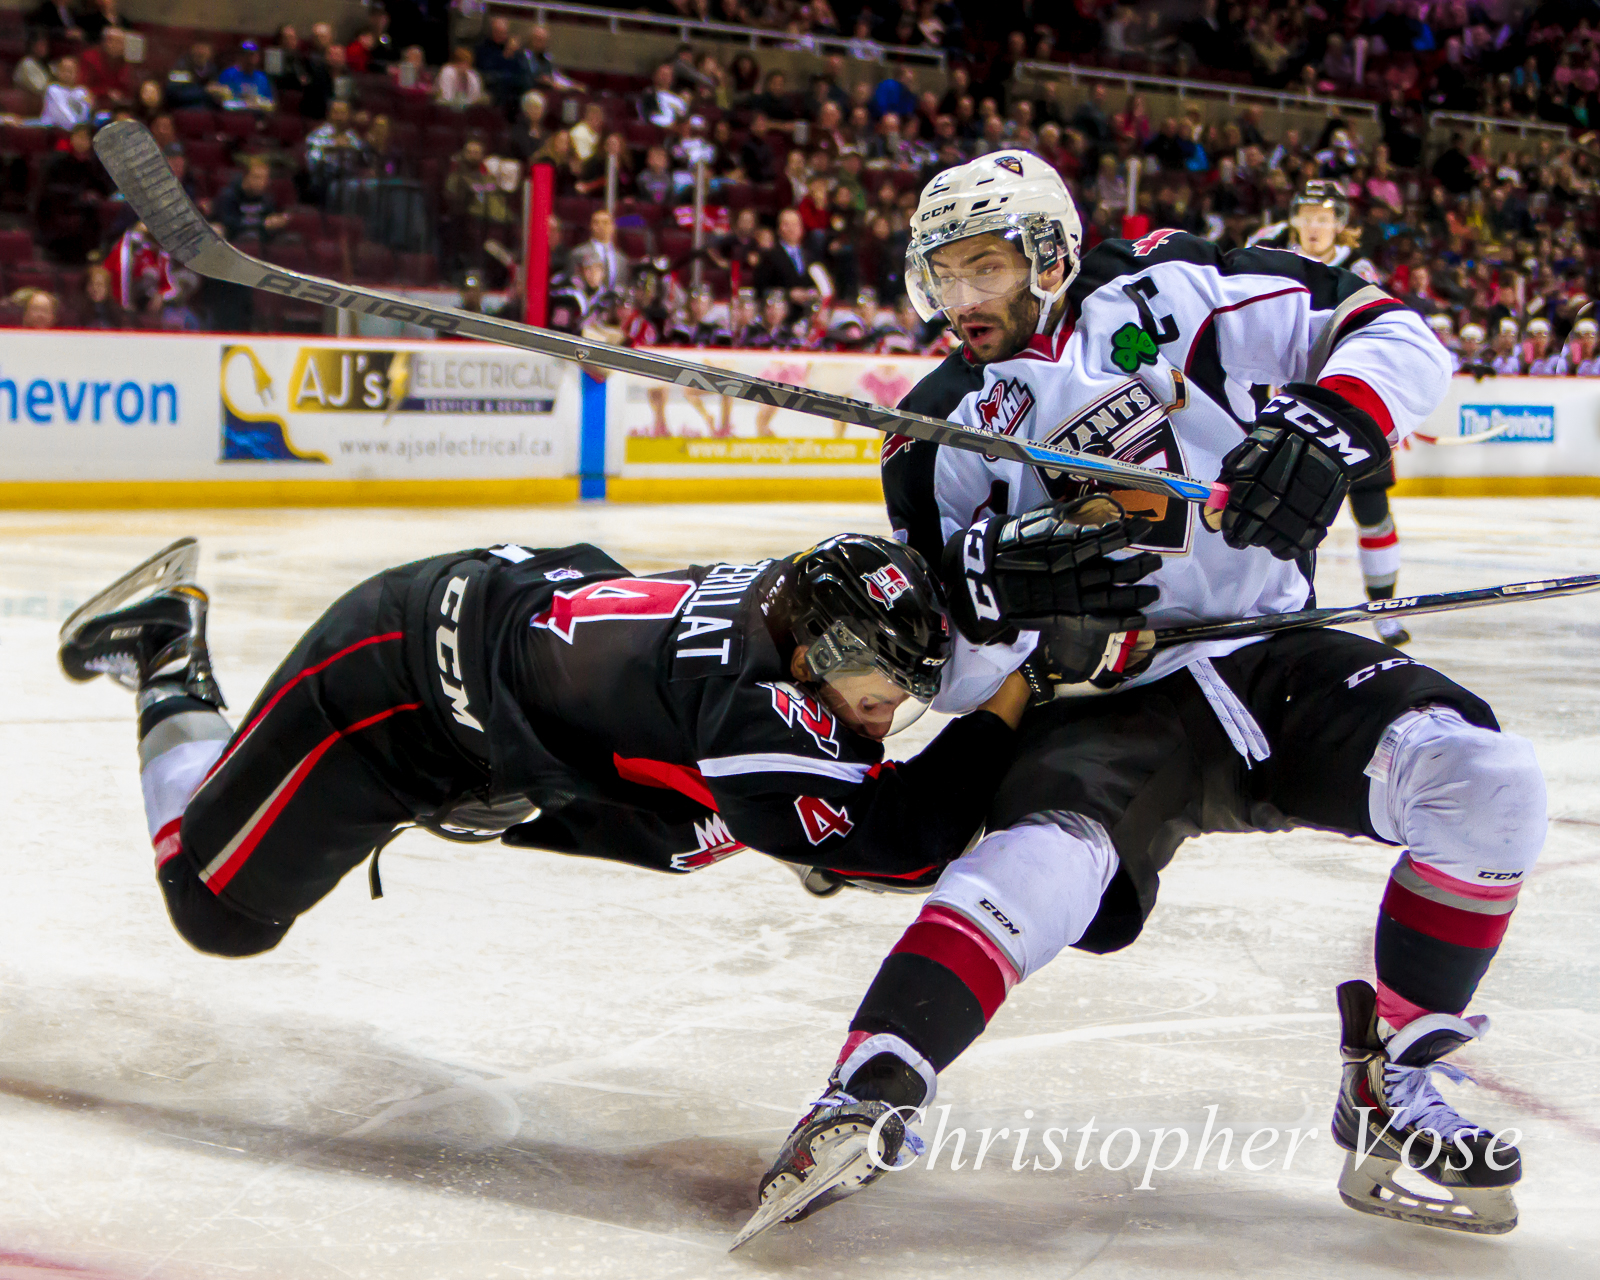 Moose Jaw's Dustin Perillat flies into Vancouver's Dalton Sward at the Pacific Coliseum on Wednesday afternoon.